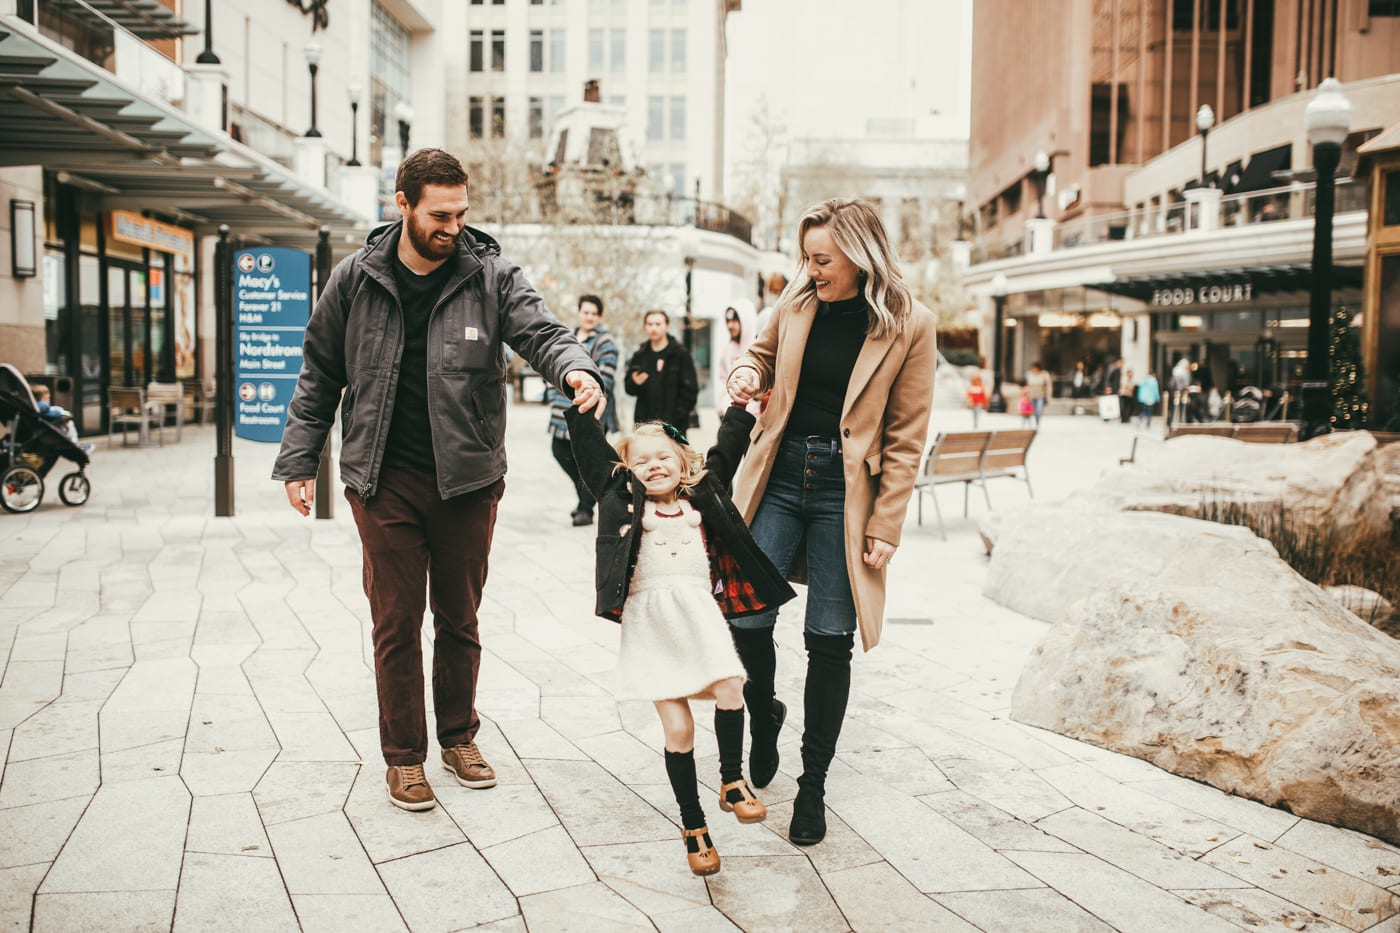 city creek shop and stay weekend in salt lake city utah with hilton // shop and stay / best places to stay in salt lake city and do in utah with families and kids and a girl's trip